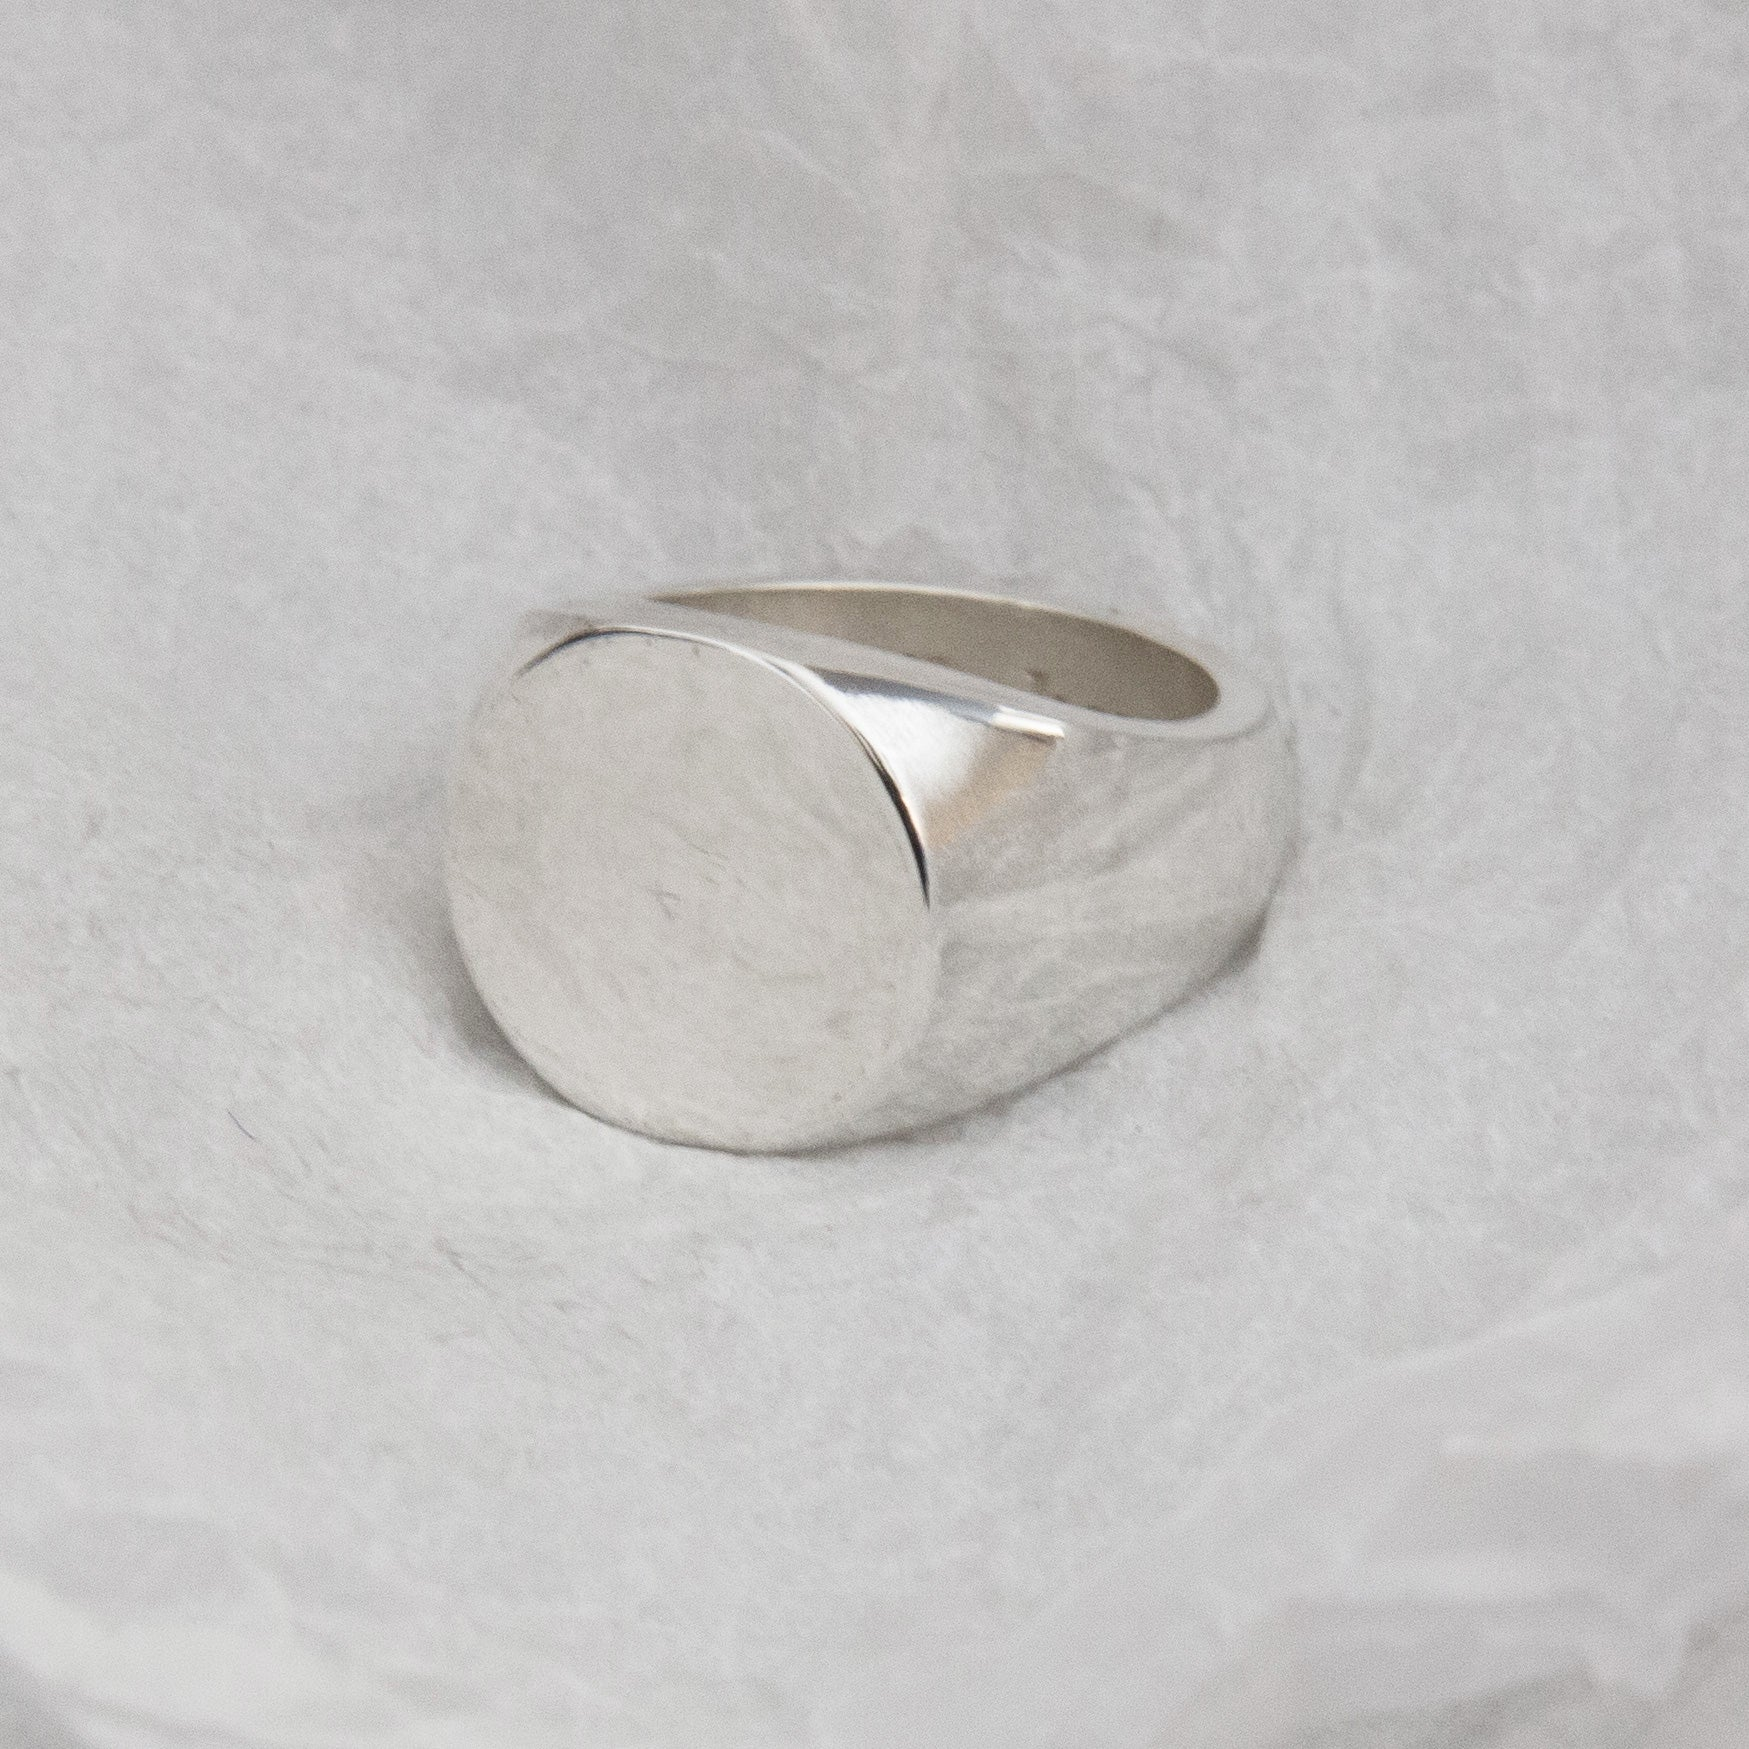 23. Circled Signet Ring SIZE S